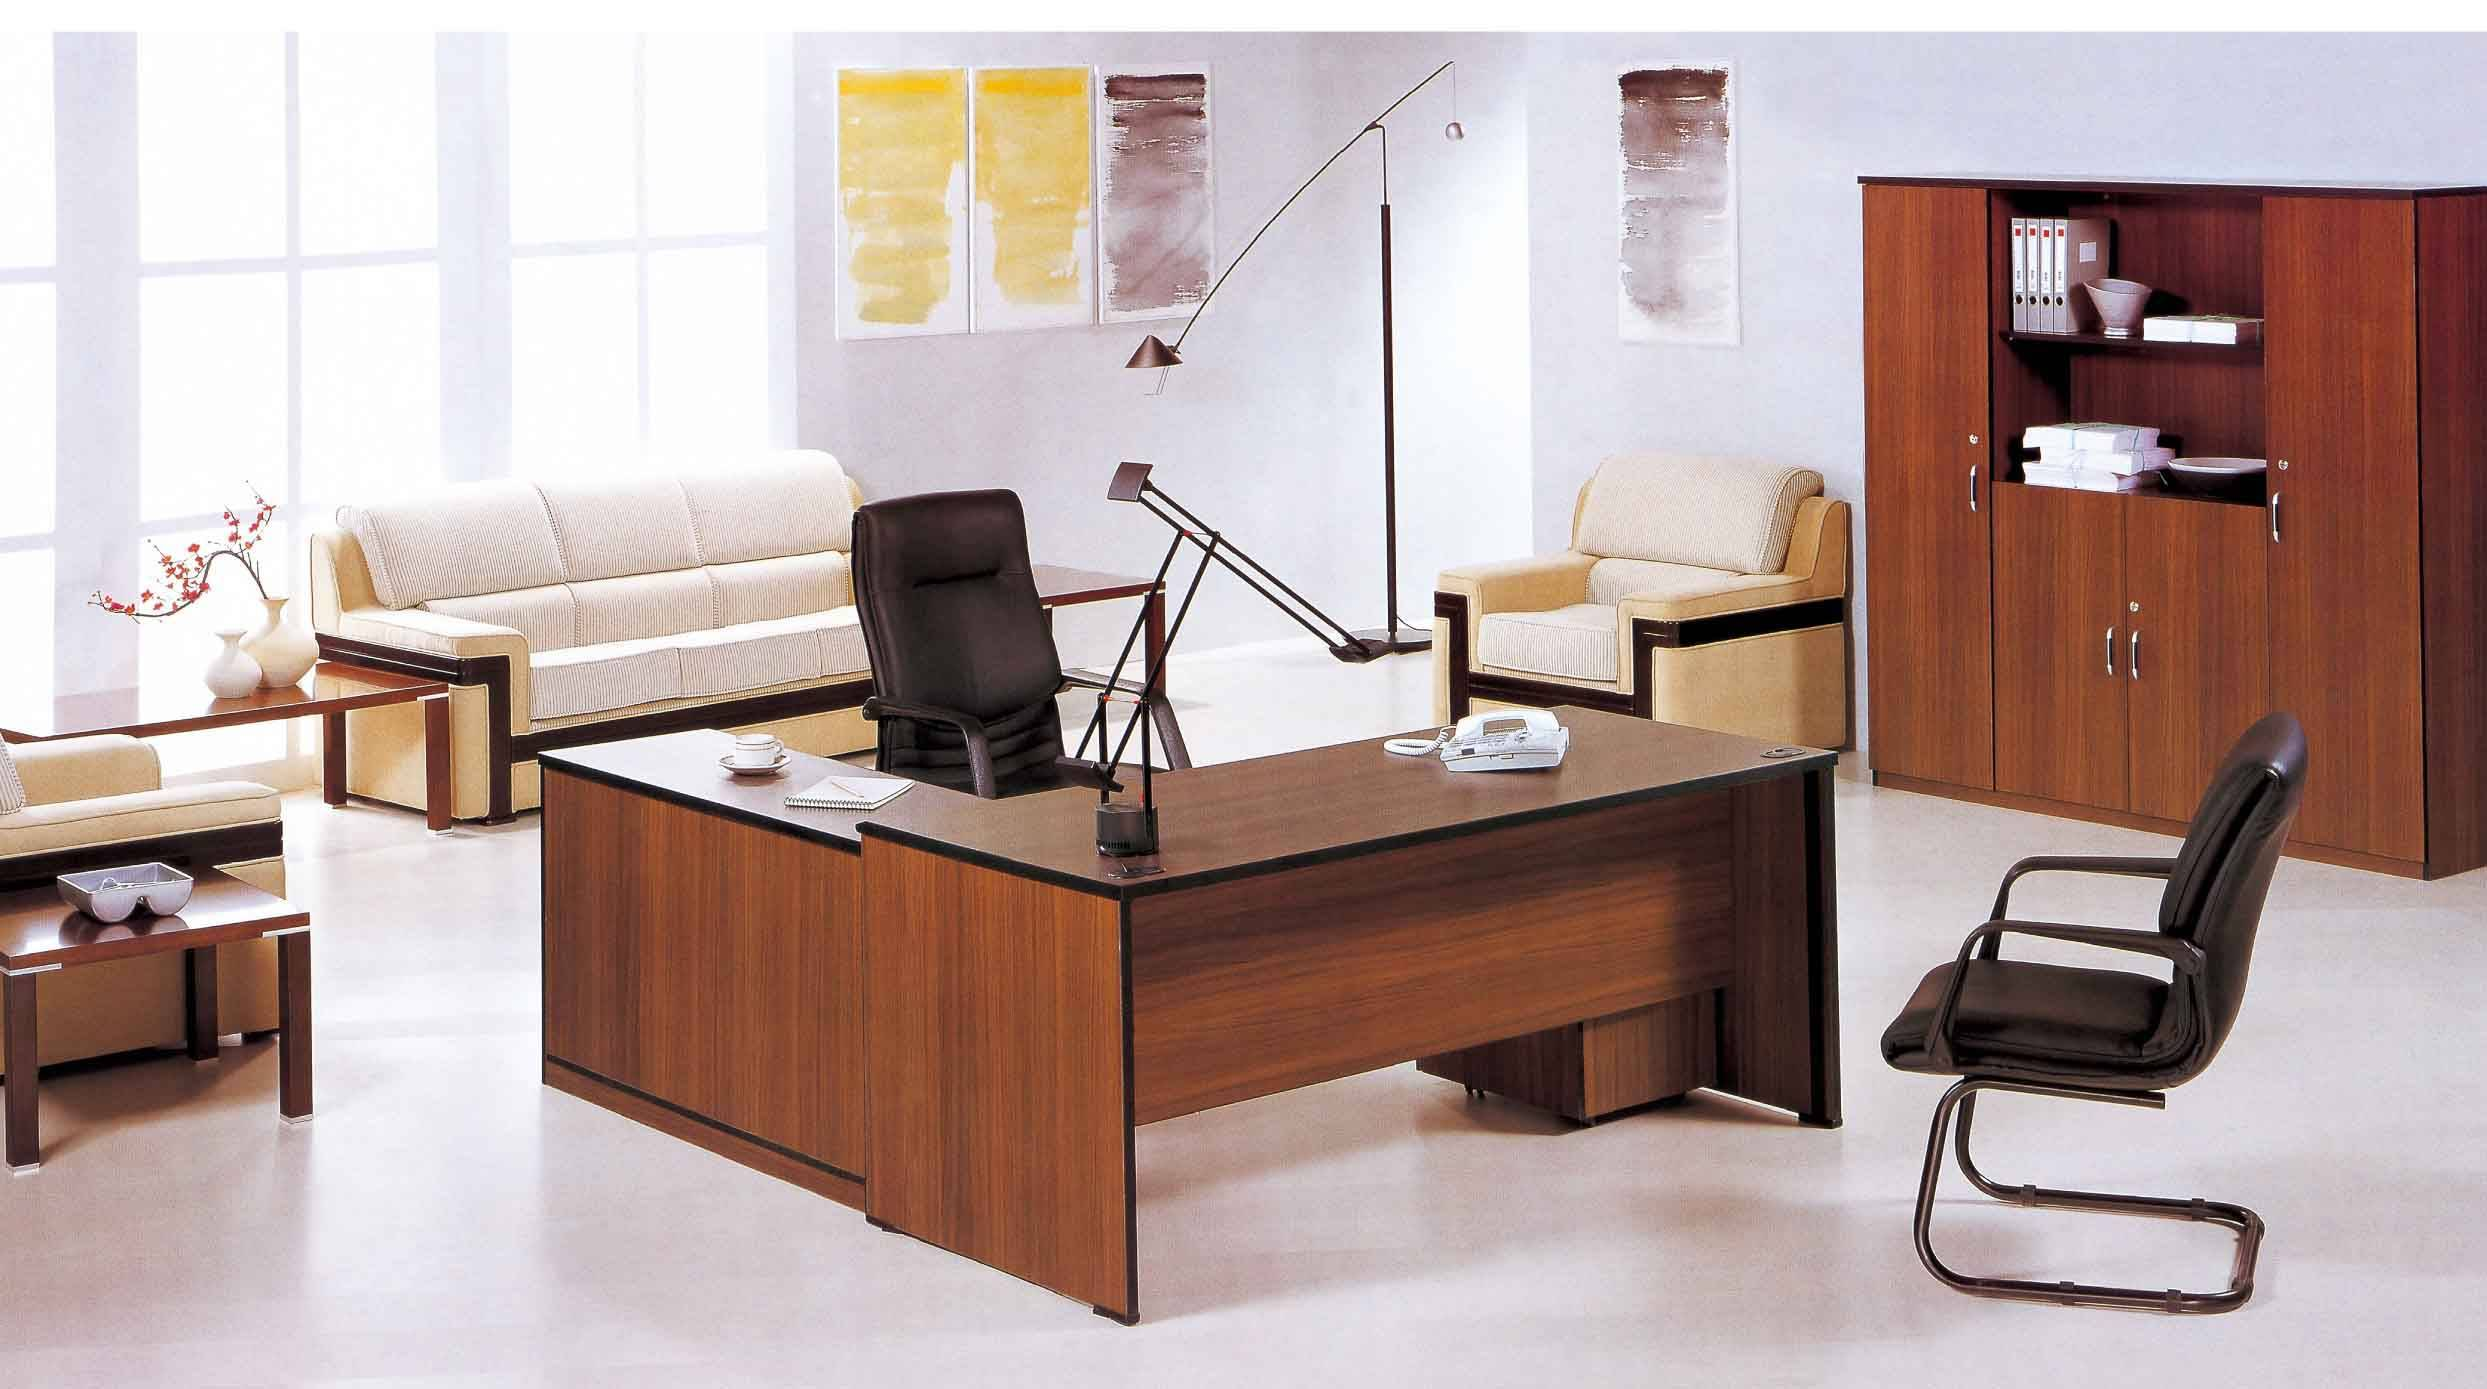 Office Furniture With High Quality Modern Fashion Design